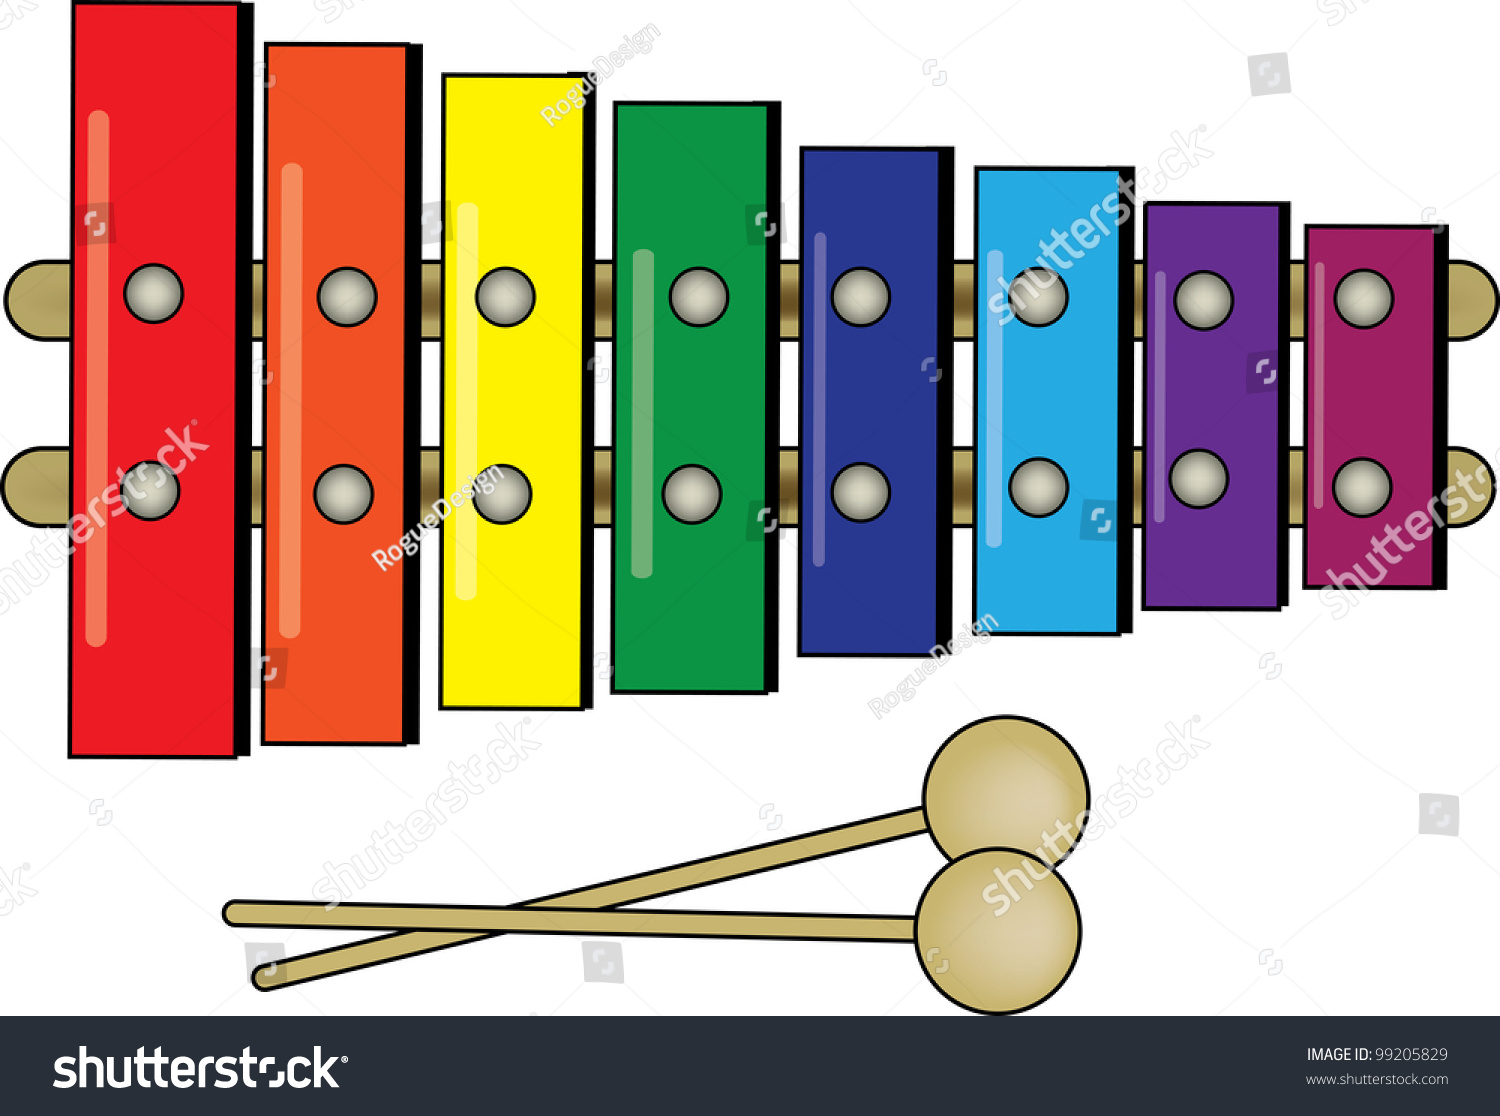 clipartlook. Xylophone clipart colorful